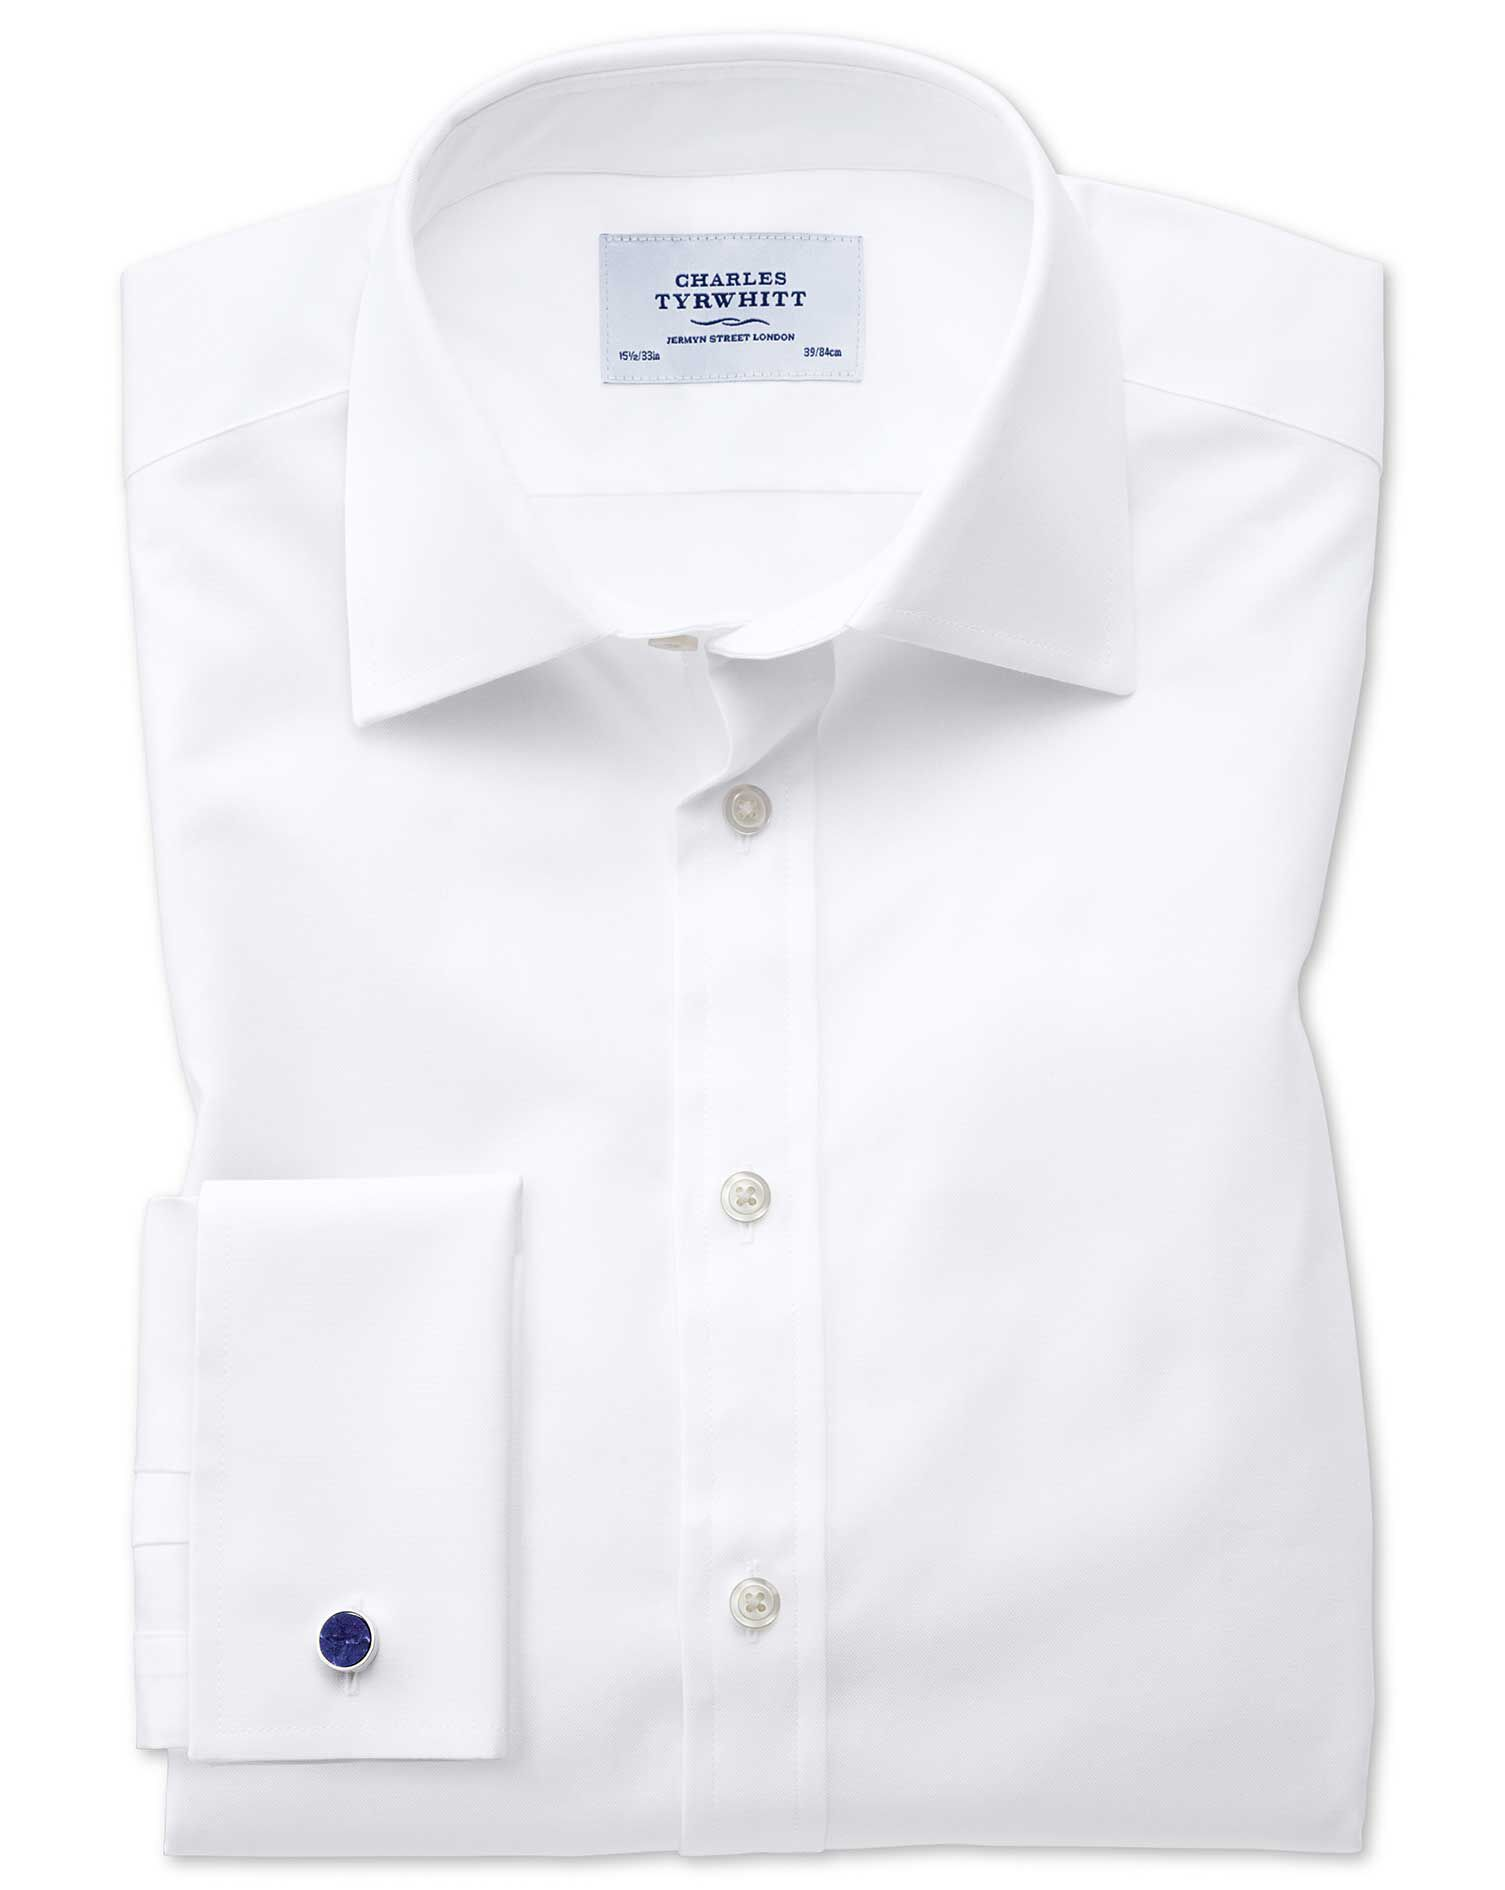 Slim Fit Oxford White Cotton Formal Shirt Single Cuff Size 18/35 by Charles Tyrwhitt